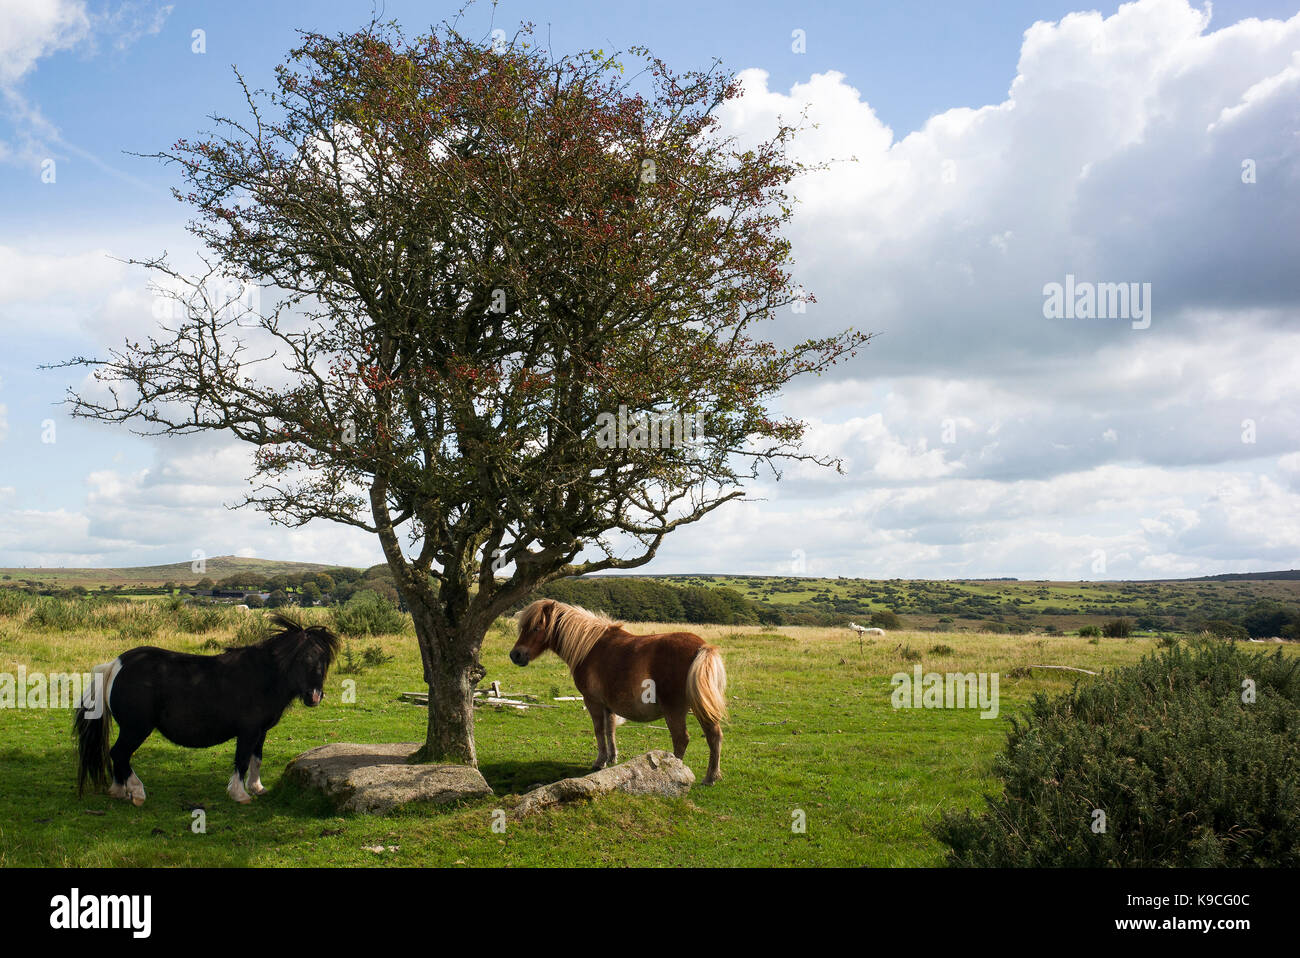 ponies on bodmin moor by tree Stock Photo